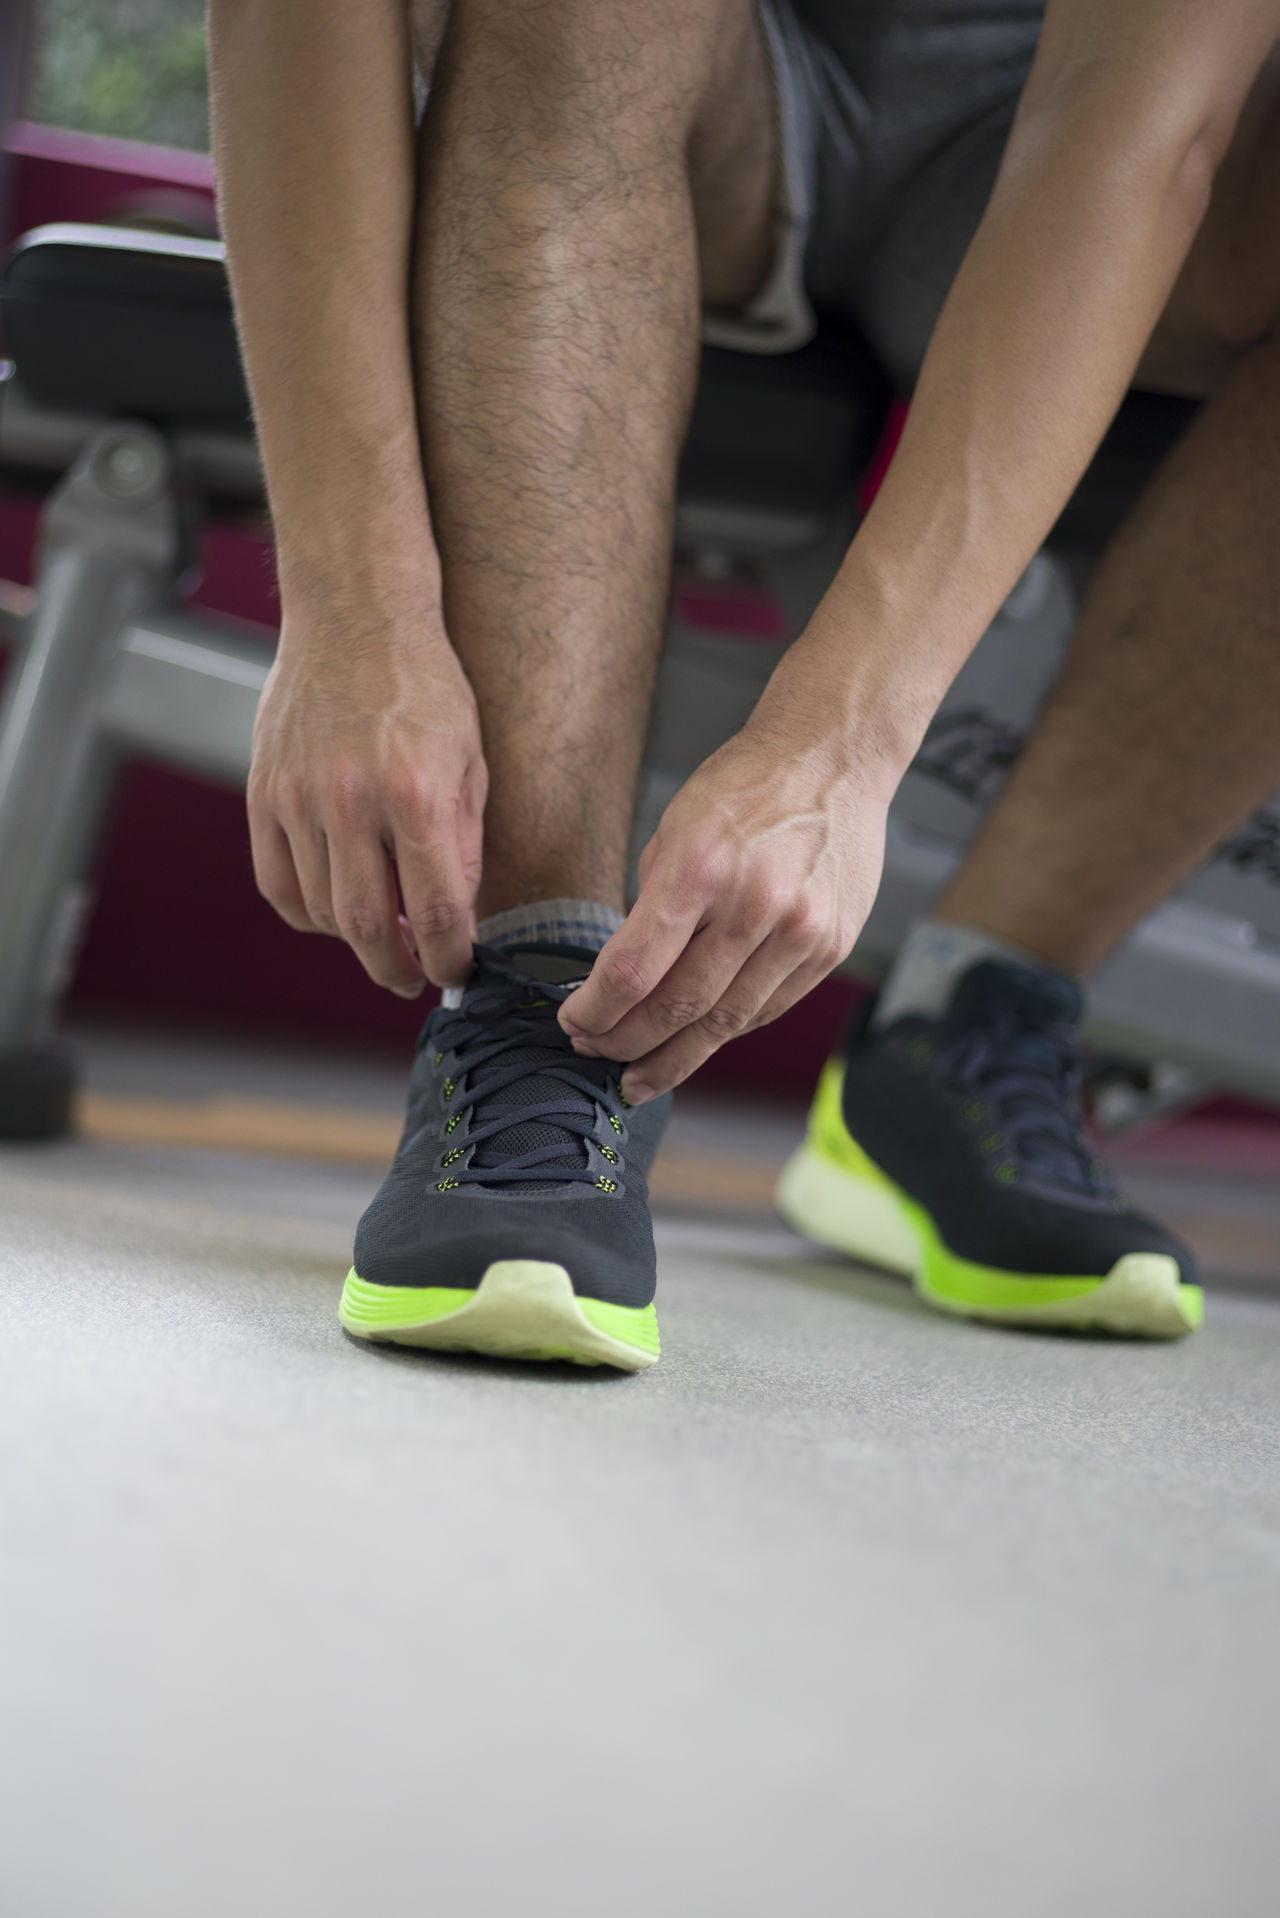 Lace up for the workout of your life. Athlete Day Exercise Fitness Footwear Green Gym Hand Healthy Healthy Lifestyle Human Leg Indoors  Legs Lifestyles Low Section Man Men Real People Shoes Sport Sports Sportswear Sportwear Tying Workout